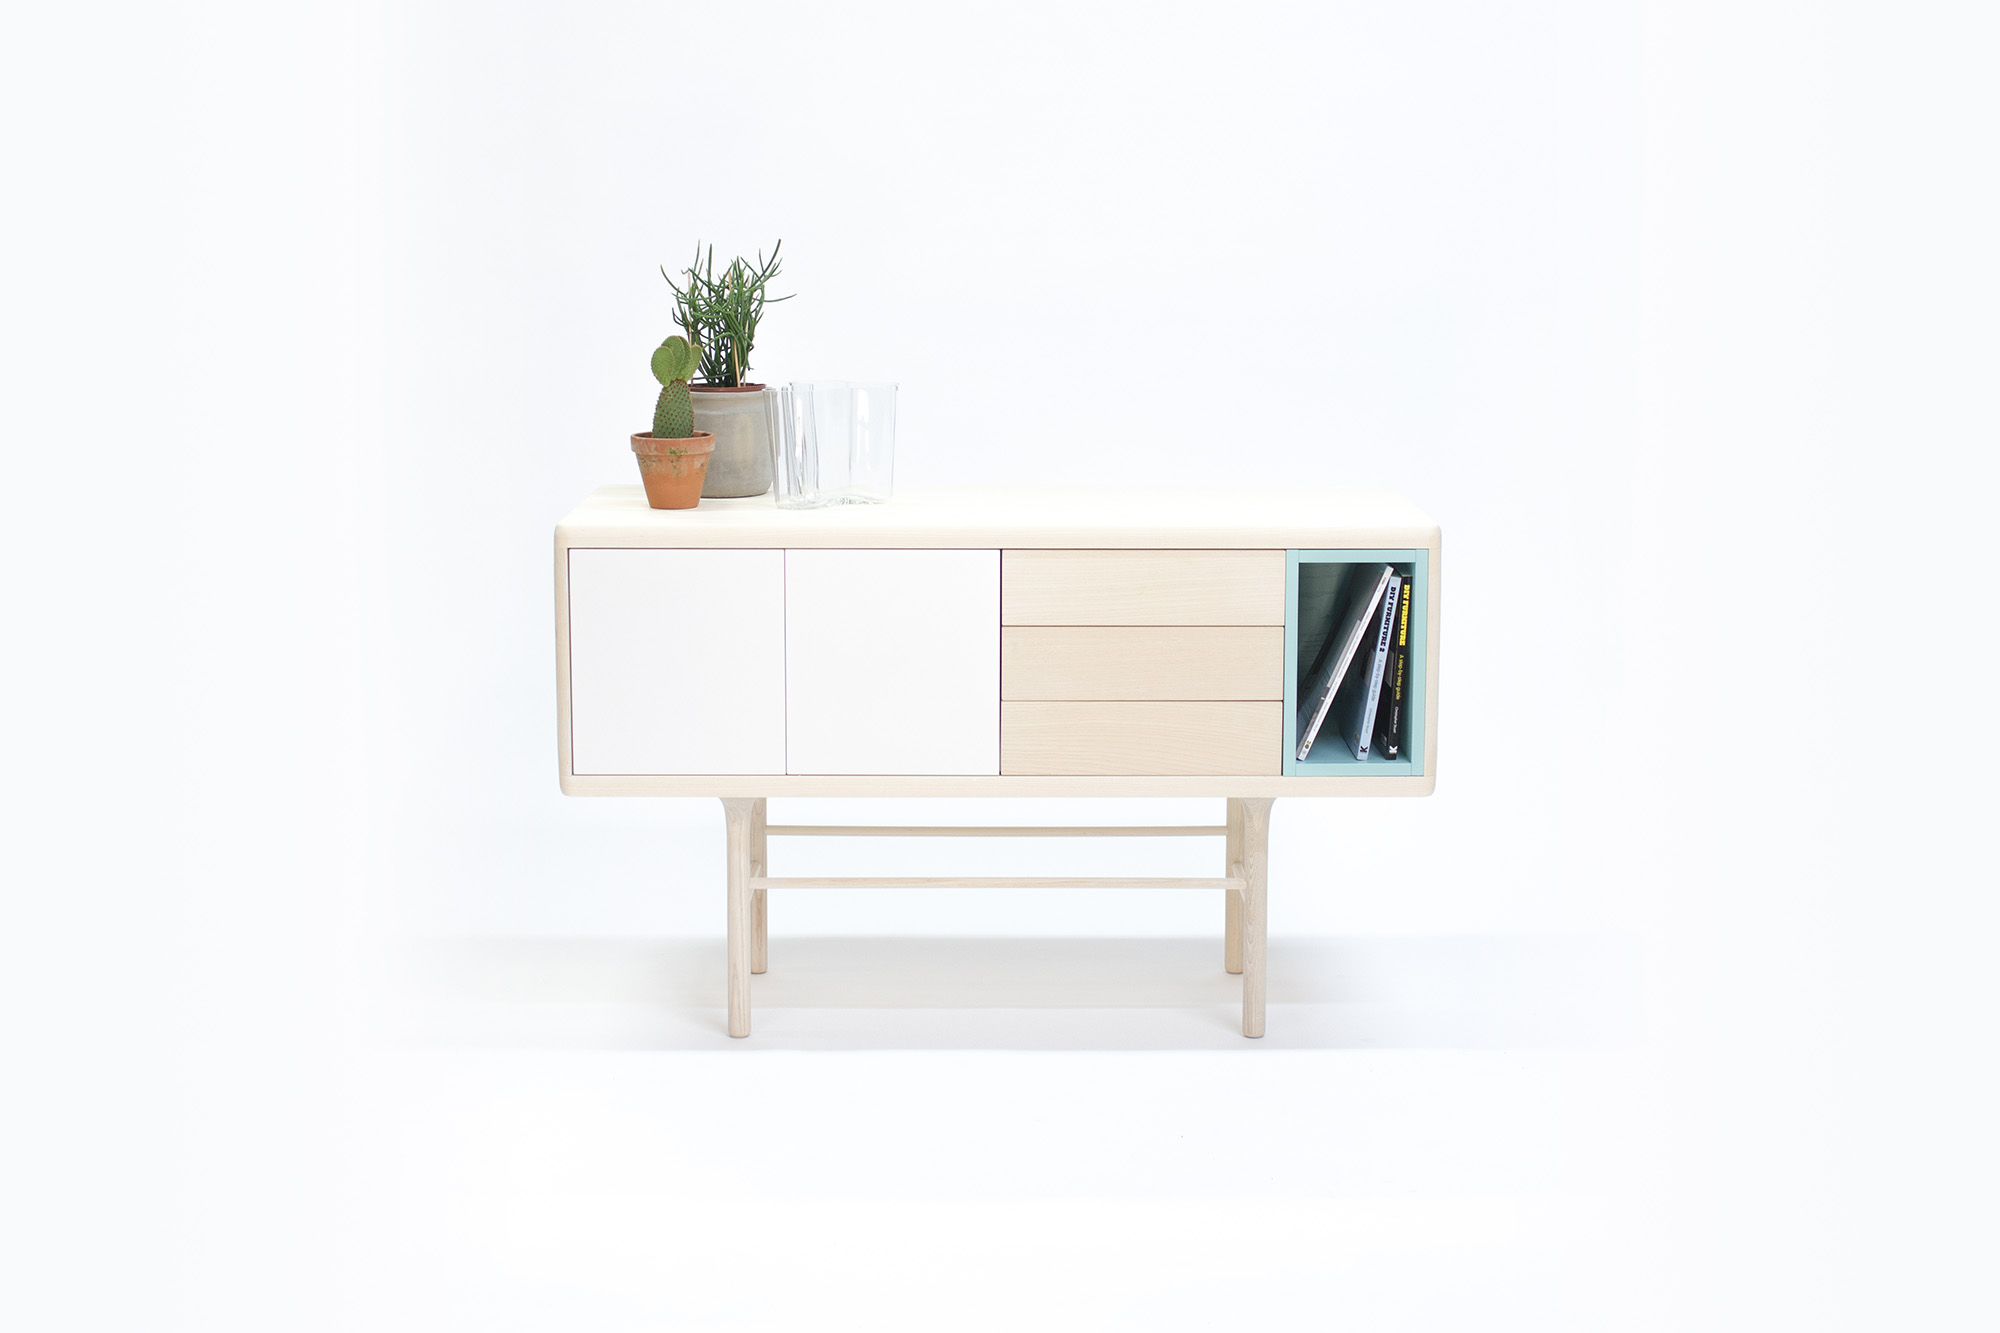 minimal scandinavian furniture by designer carlos jim nez